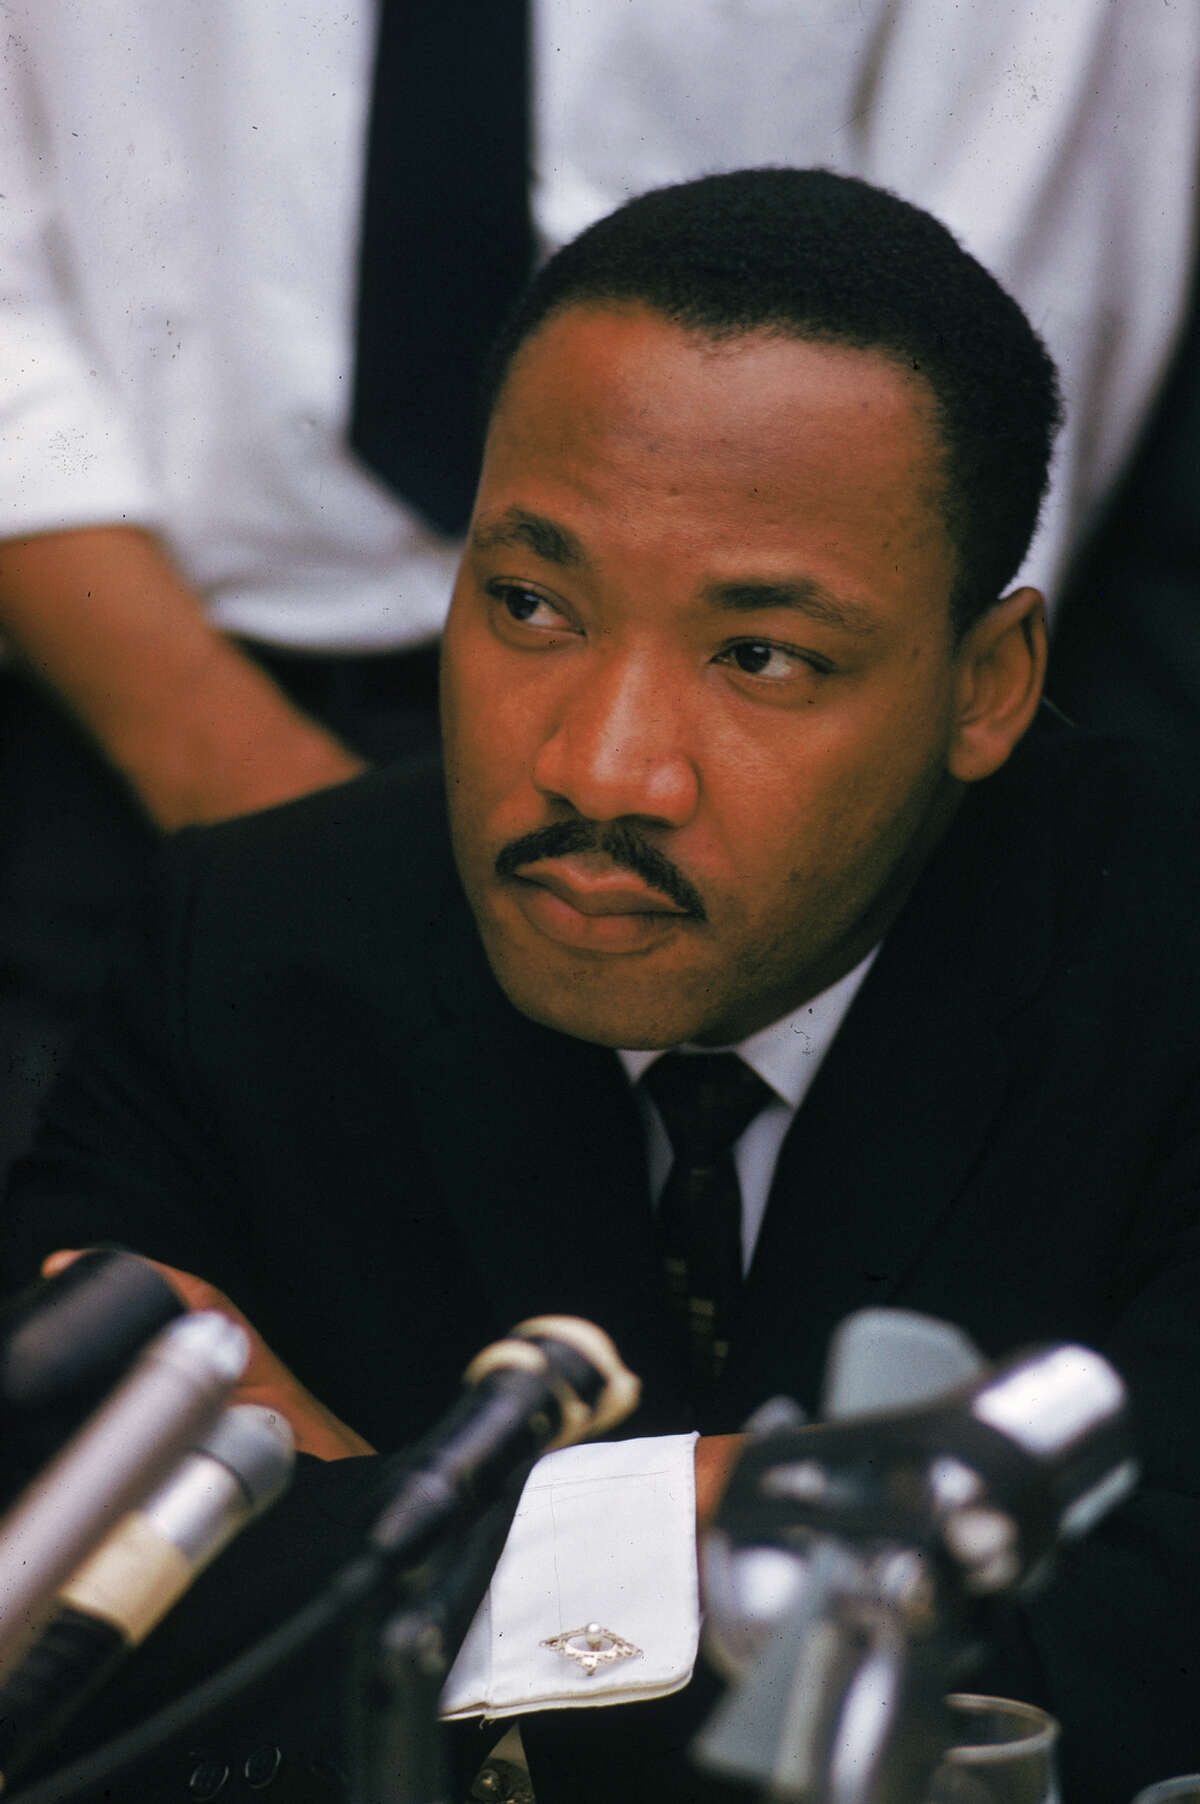 American clergyman and civil rights activist Martin Luther King Jnr (1929 - 1968) makes a public address in Birmingham, Alabama.